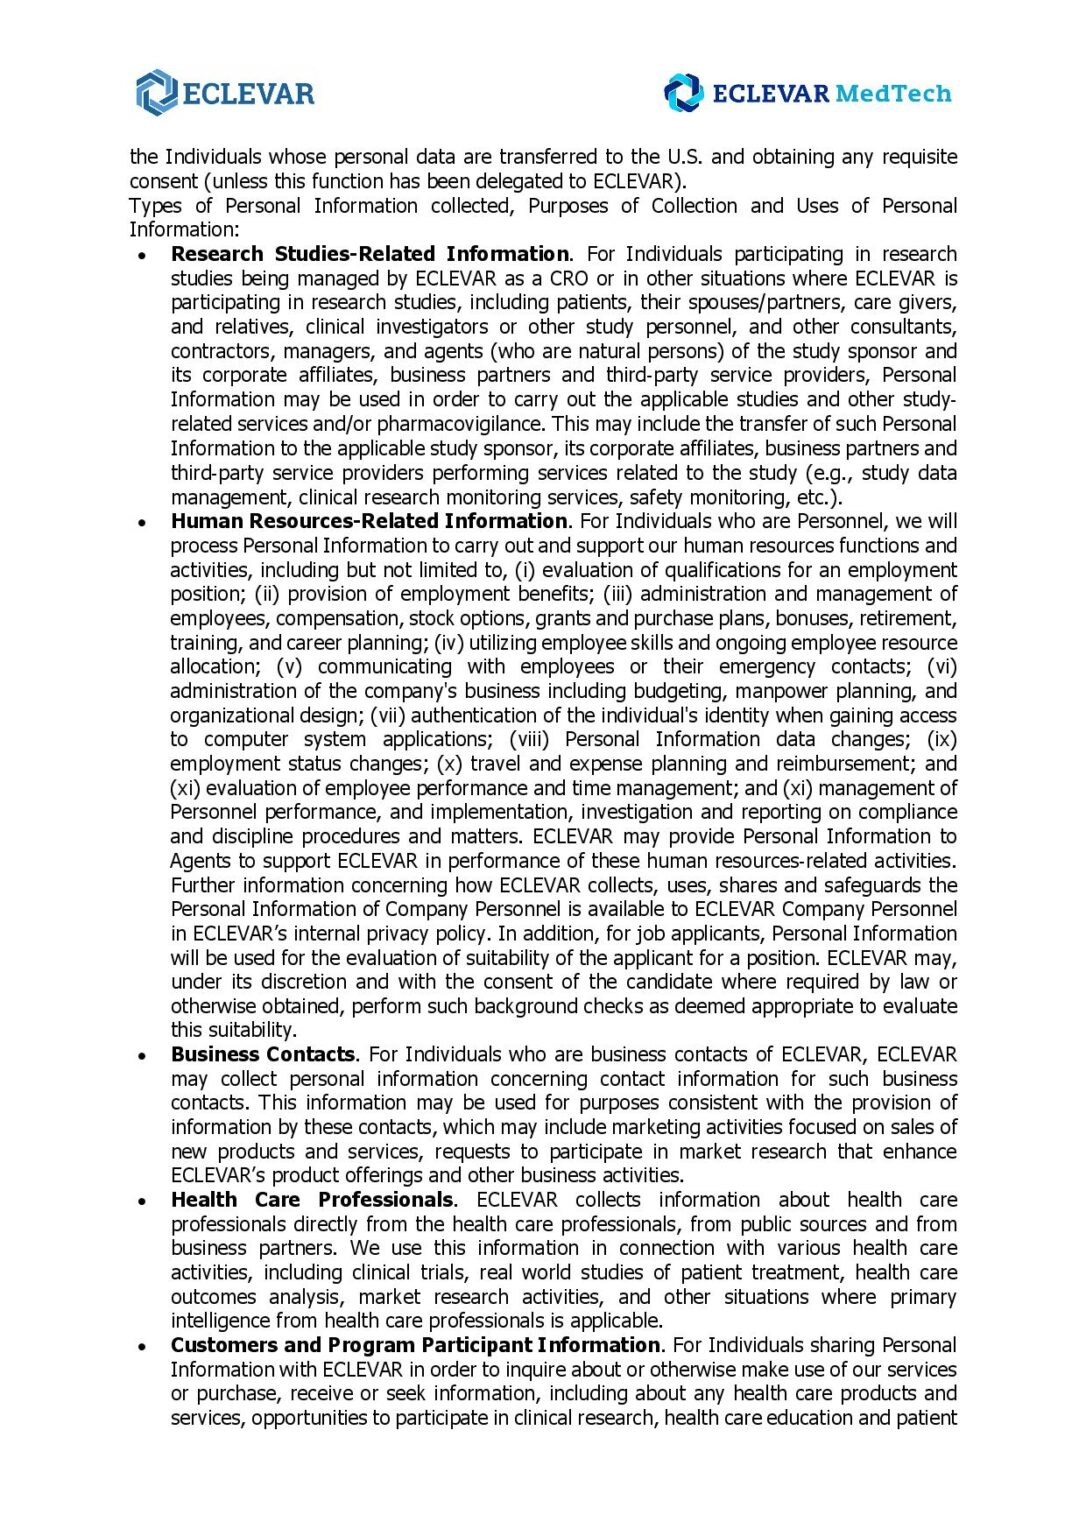 ECLEVAR PRIVACY 19 08 2020 _MedTech-page-011